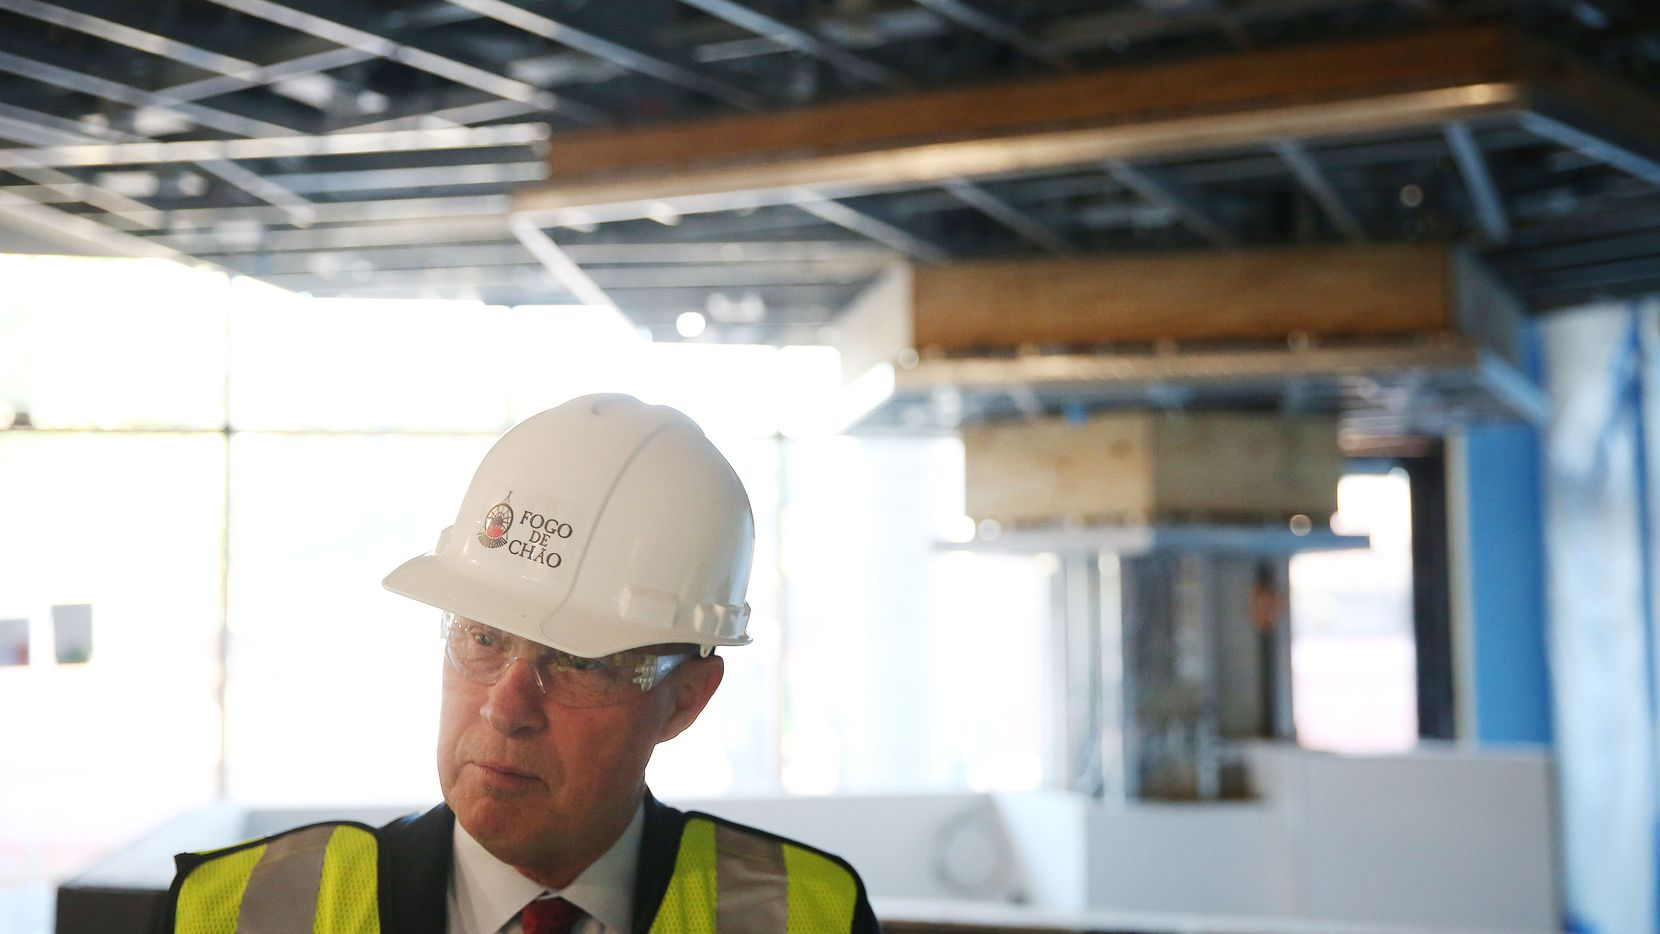 Lawrence Johnson, CEO of Fogo de Chão , gives The Dallas Morning News a tour of the space that will house the newest Fogo de Chao restaurant in the One Uptown building on the corner of Mckinney Avenue and Routh Street.  (Andy Jacobsohn/The Dallas Morning News)